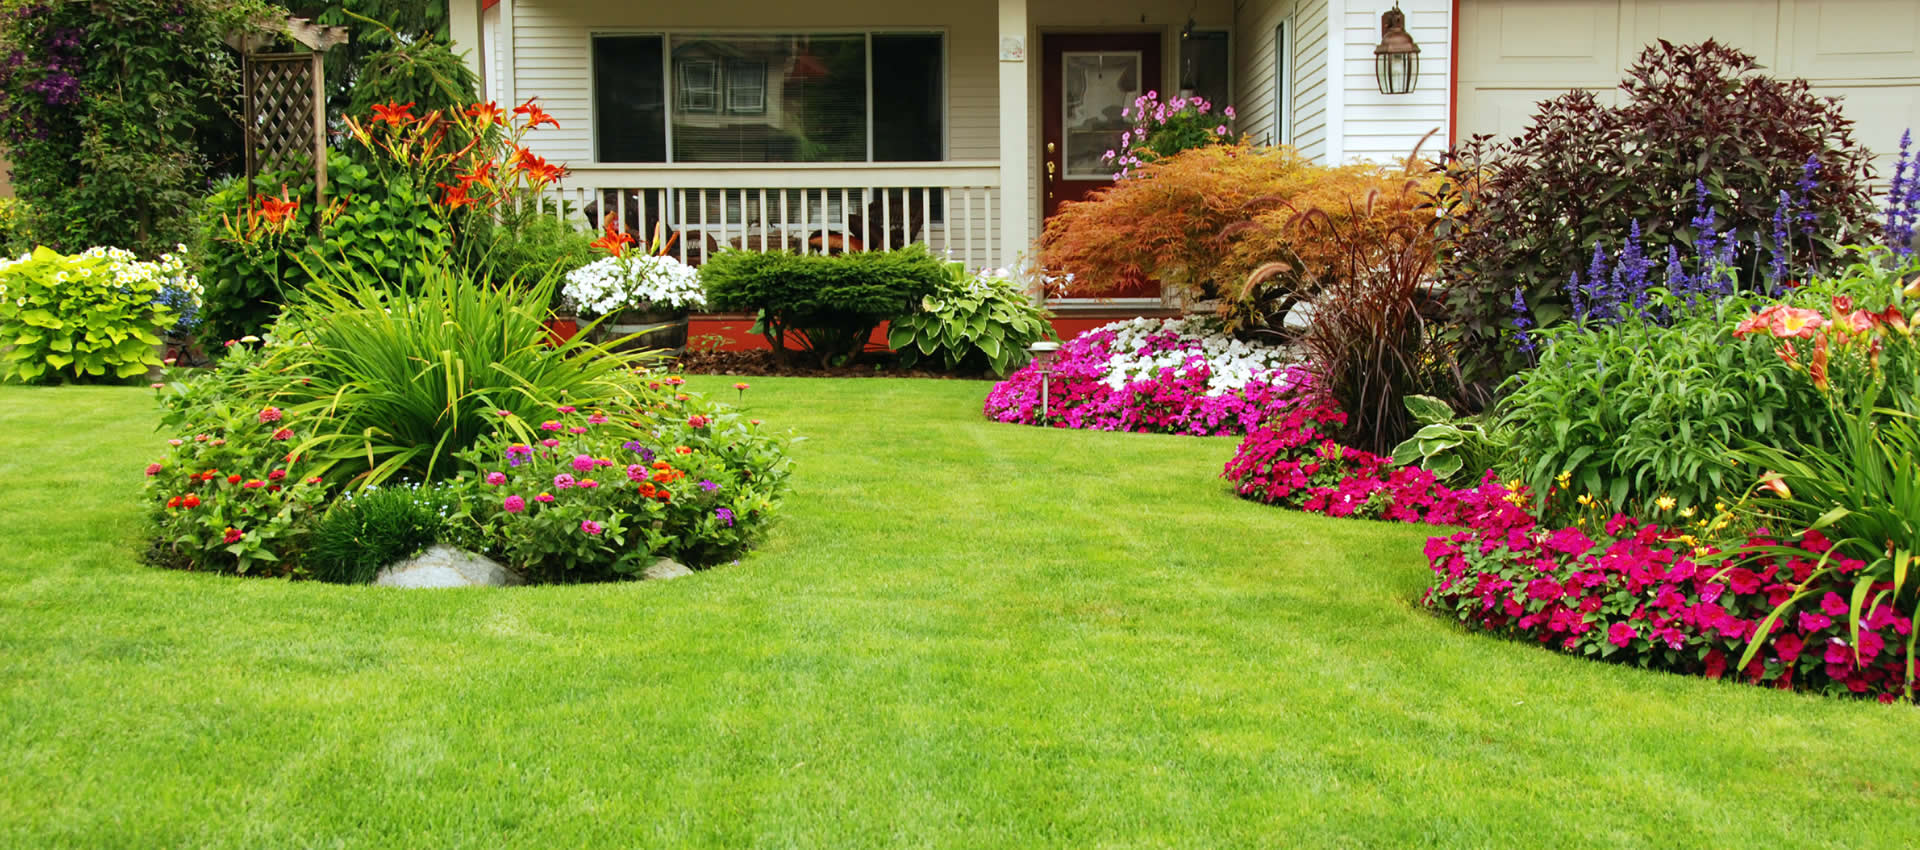 Residential lawn service ocala